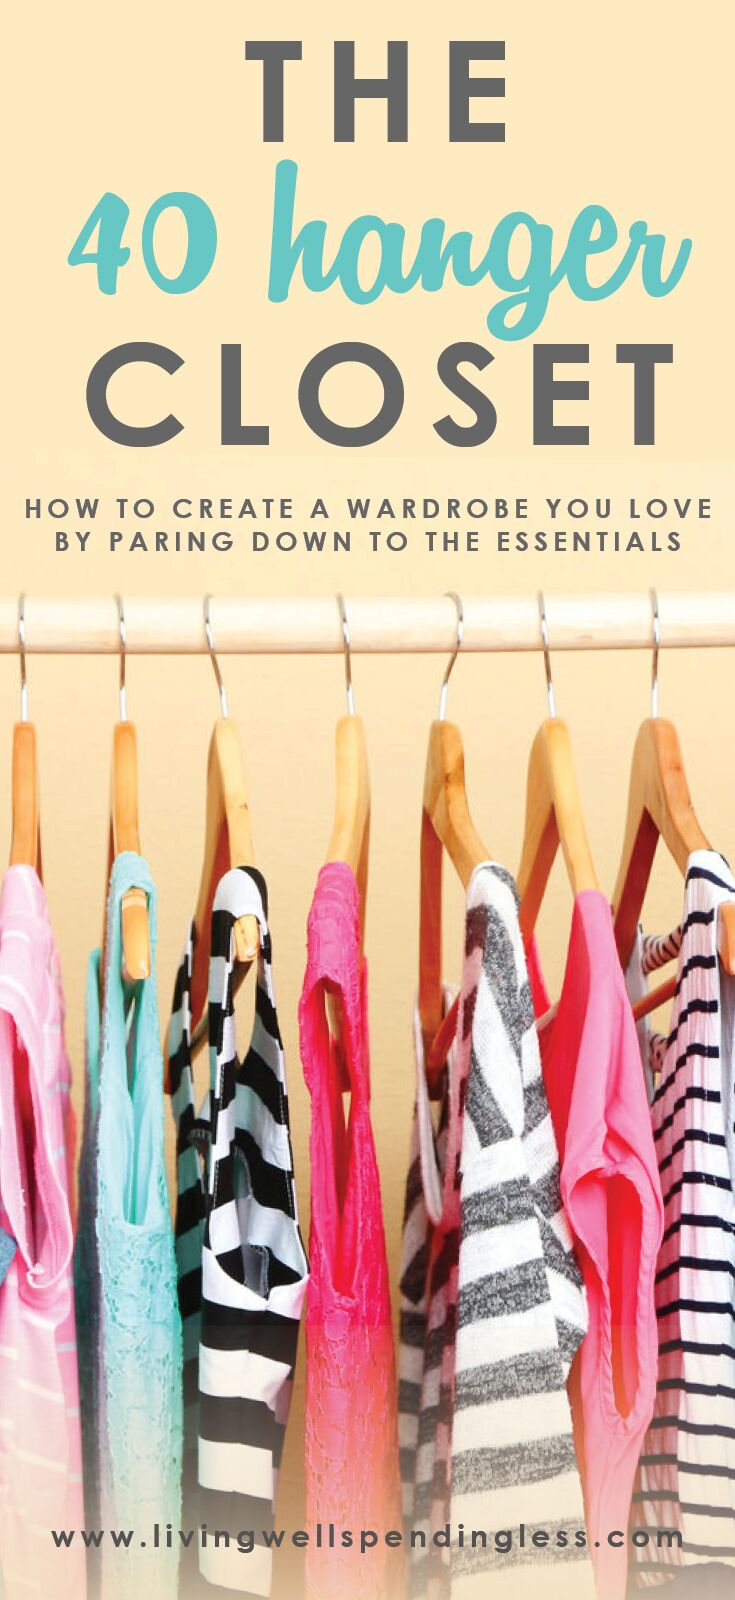 The 40 Hanger Closet: How To Create A Wardrobe You Love By Paring Down To